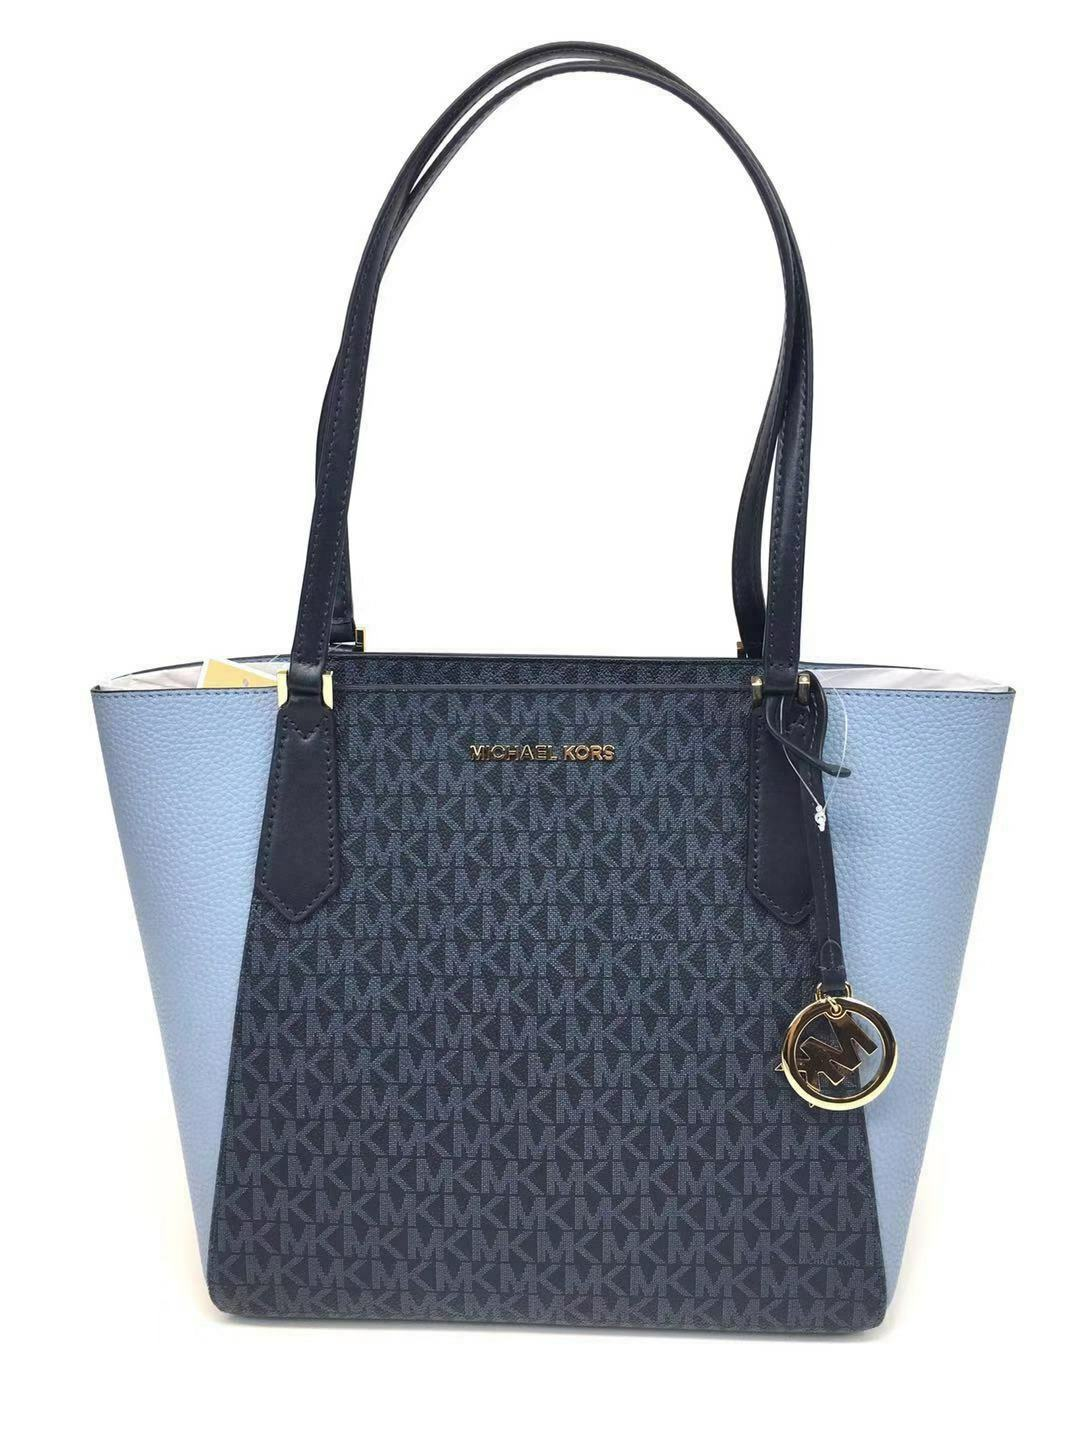 5d576c825c45 Michael Kors MK Logo PVC Kimberly Small Bonded Tote Bag in Admiral/pale  Blue for sale online | eBay